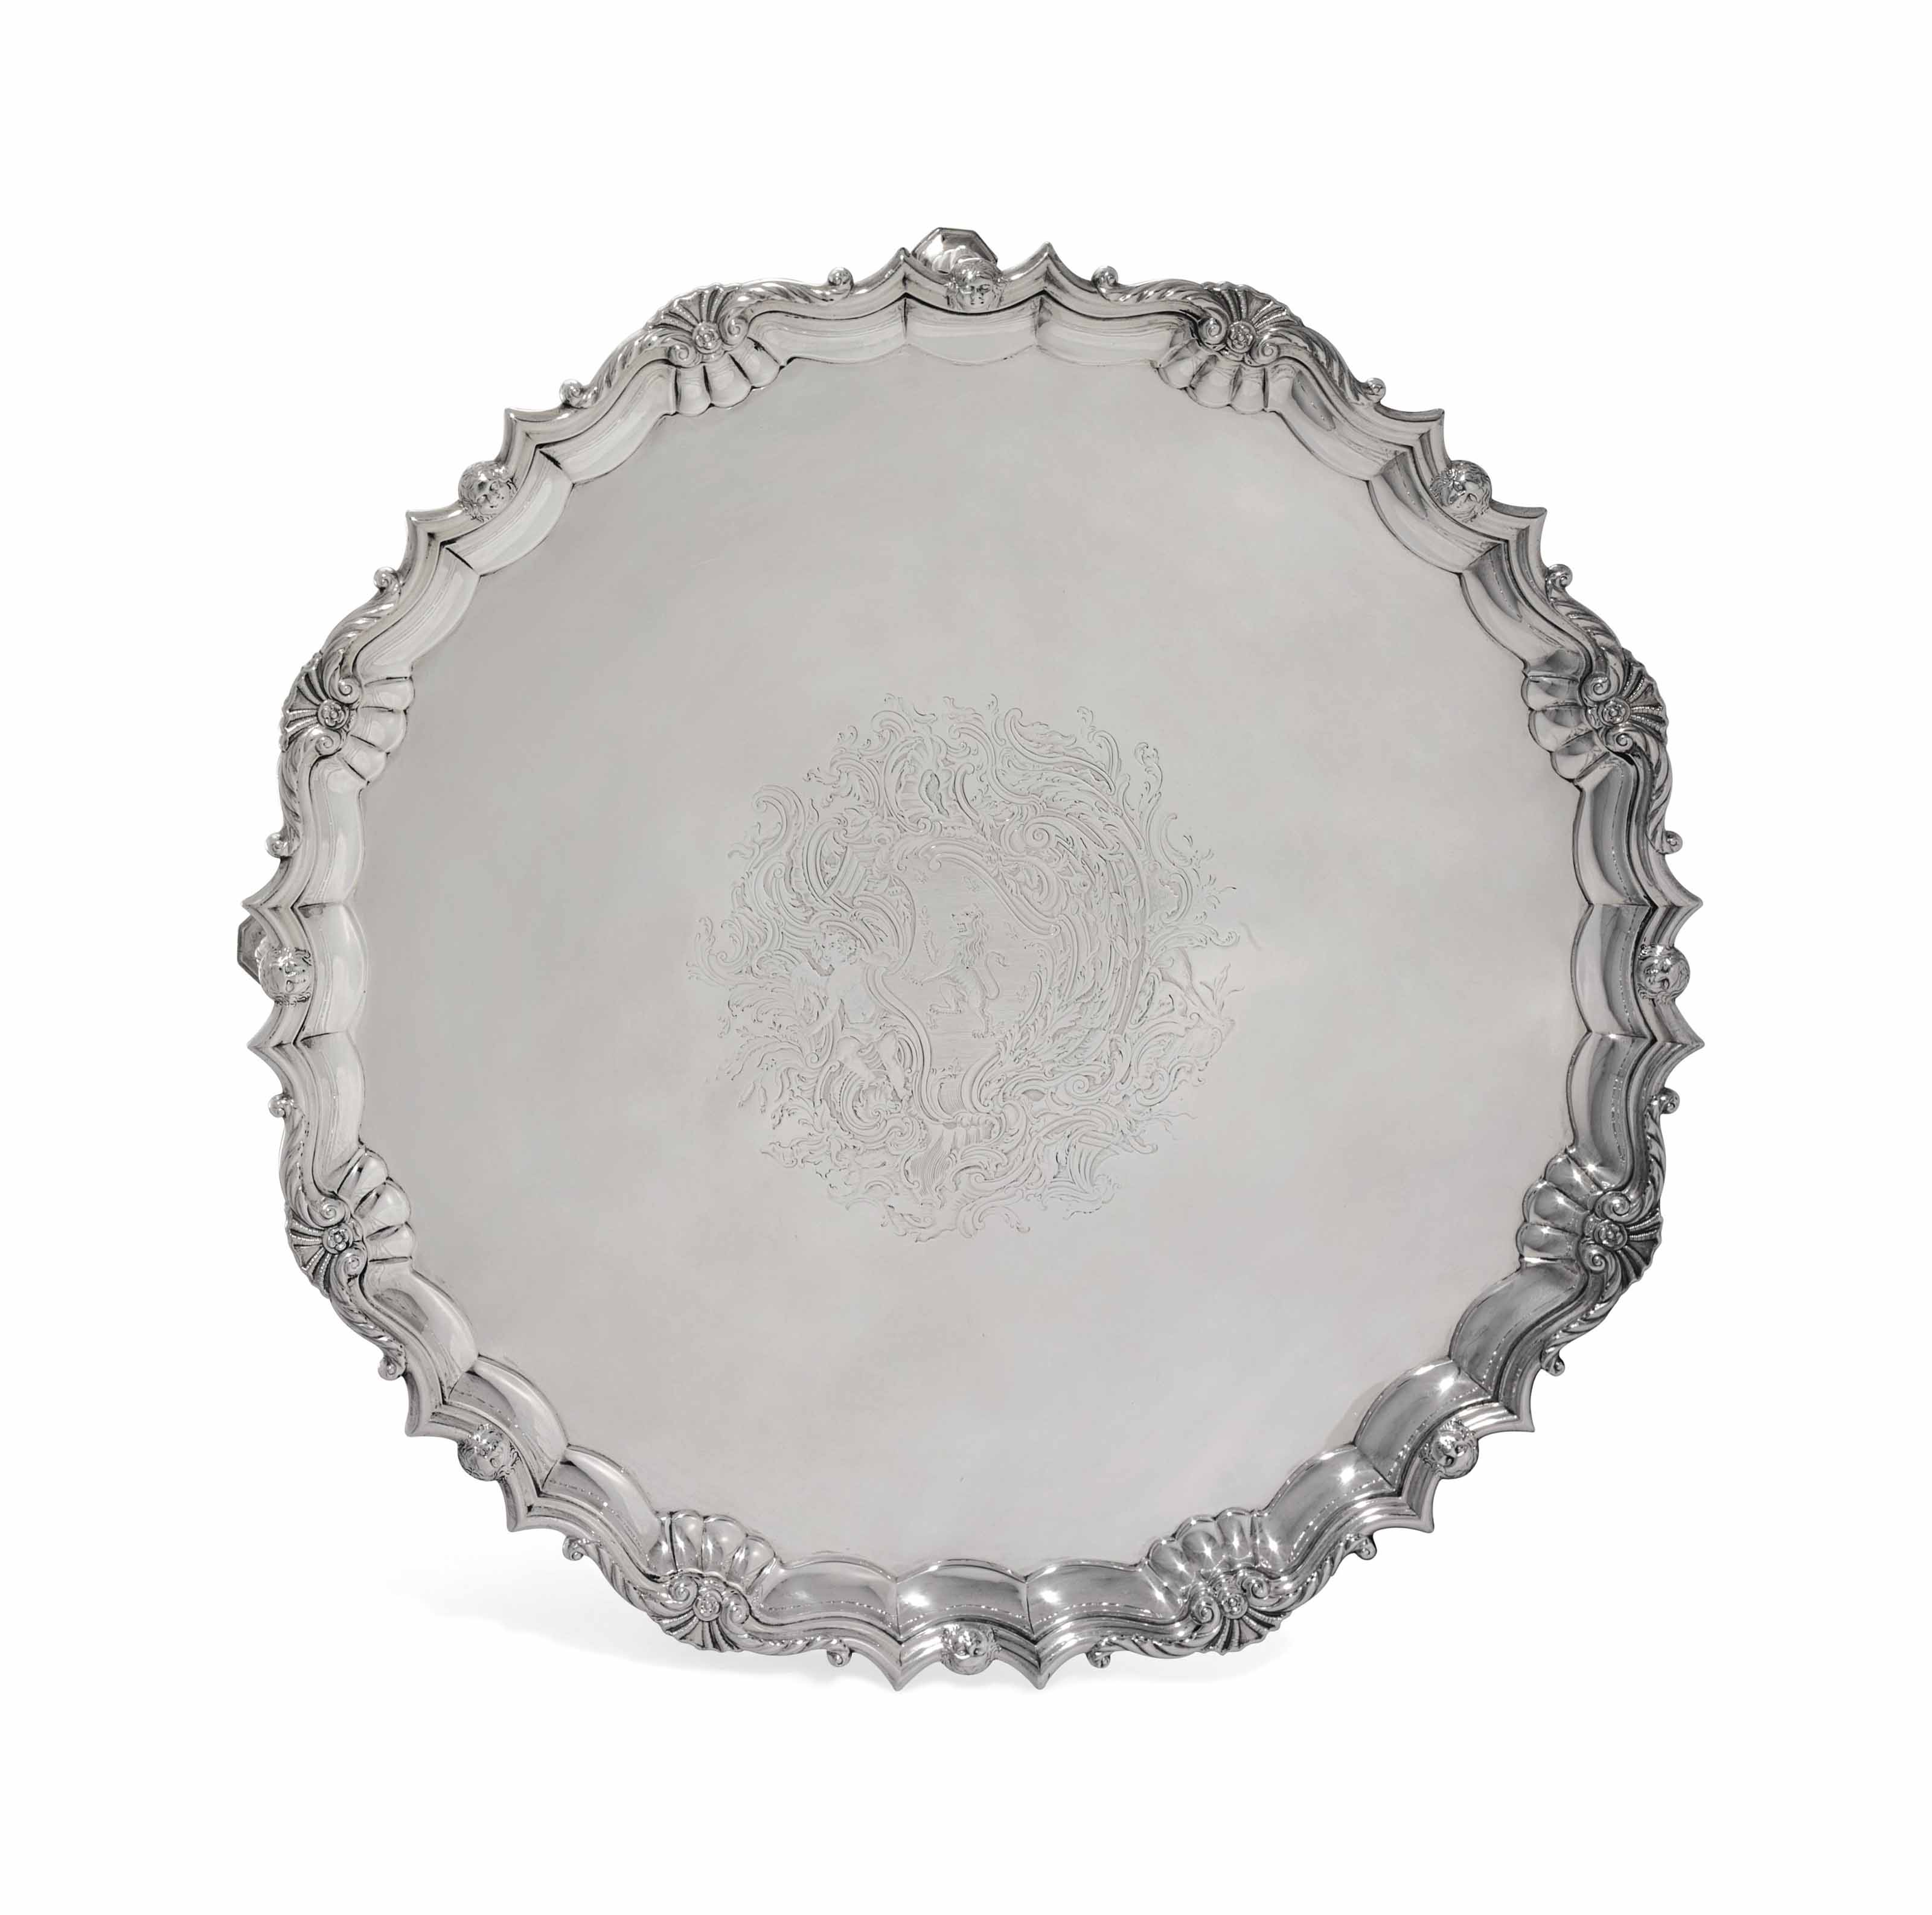 A GEORGE II IRISH SILVER SALVER